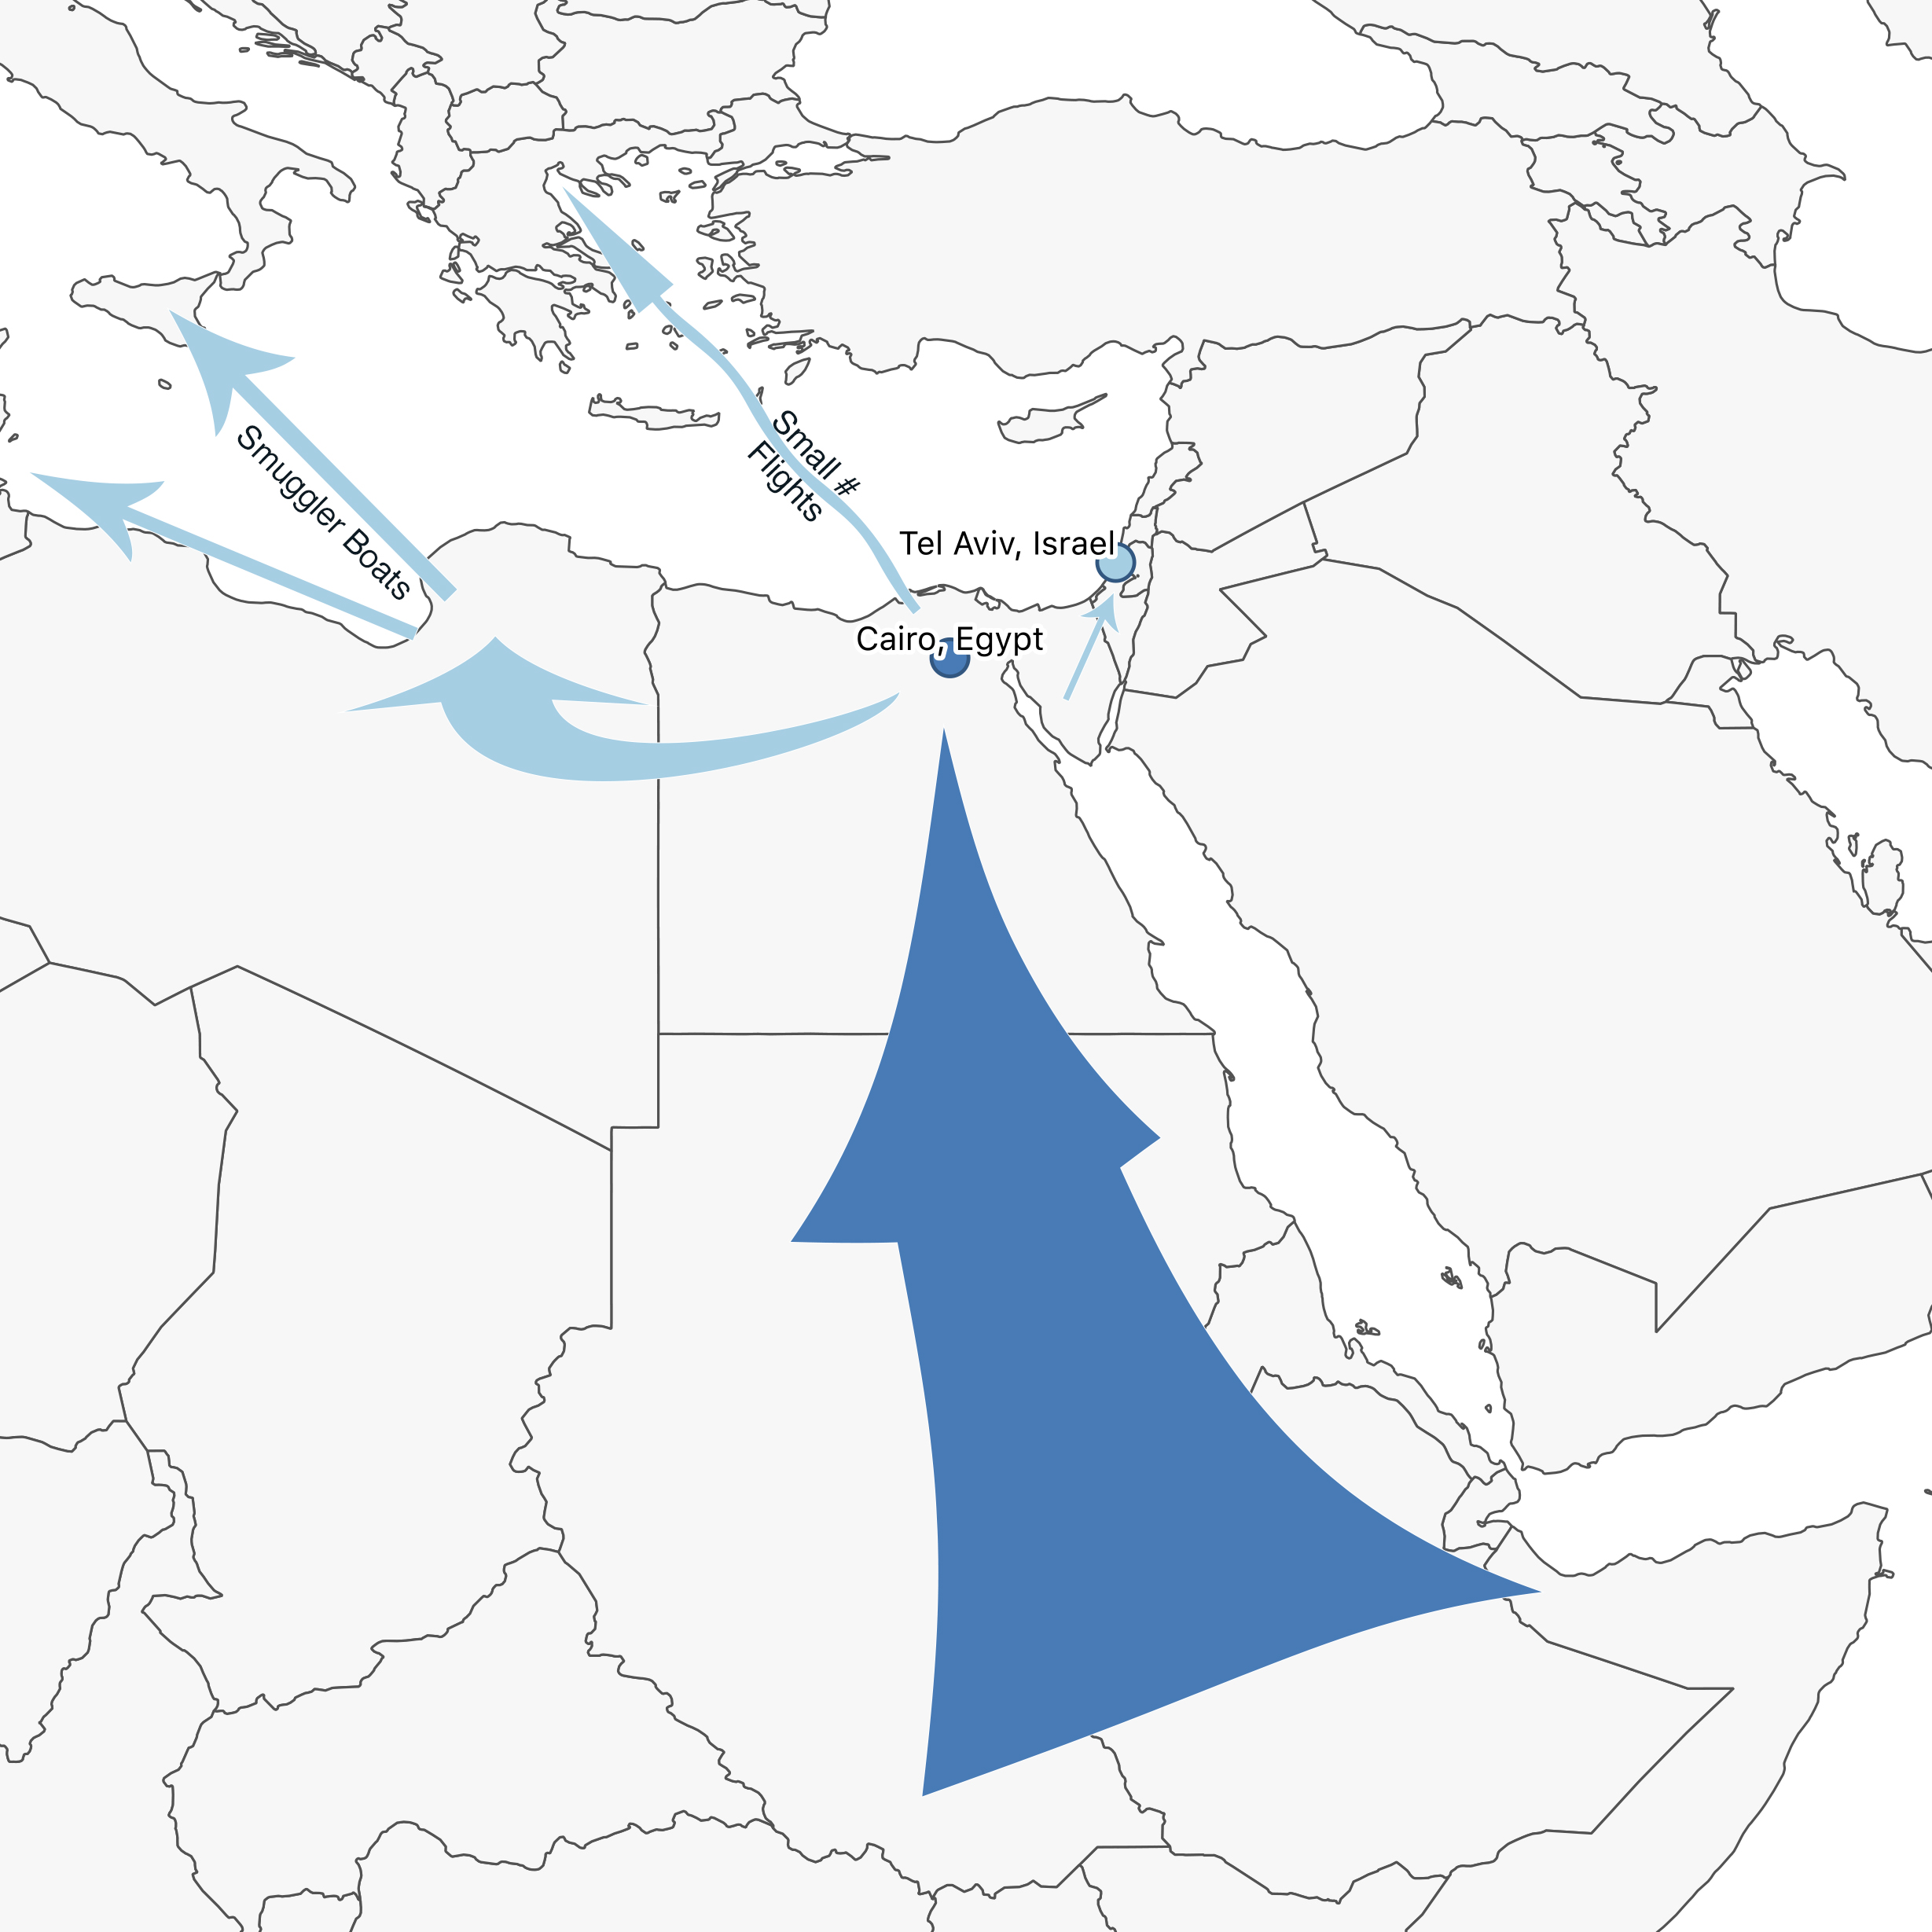 Cairo is a host and a transit city along the Northern Africa route. Click the map to learn more about the route, and to read more RIT cases from cities and towns linked together by these movements of people.